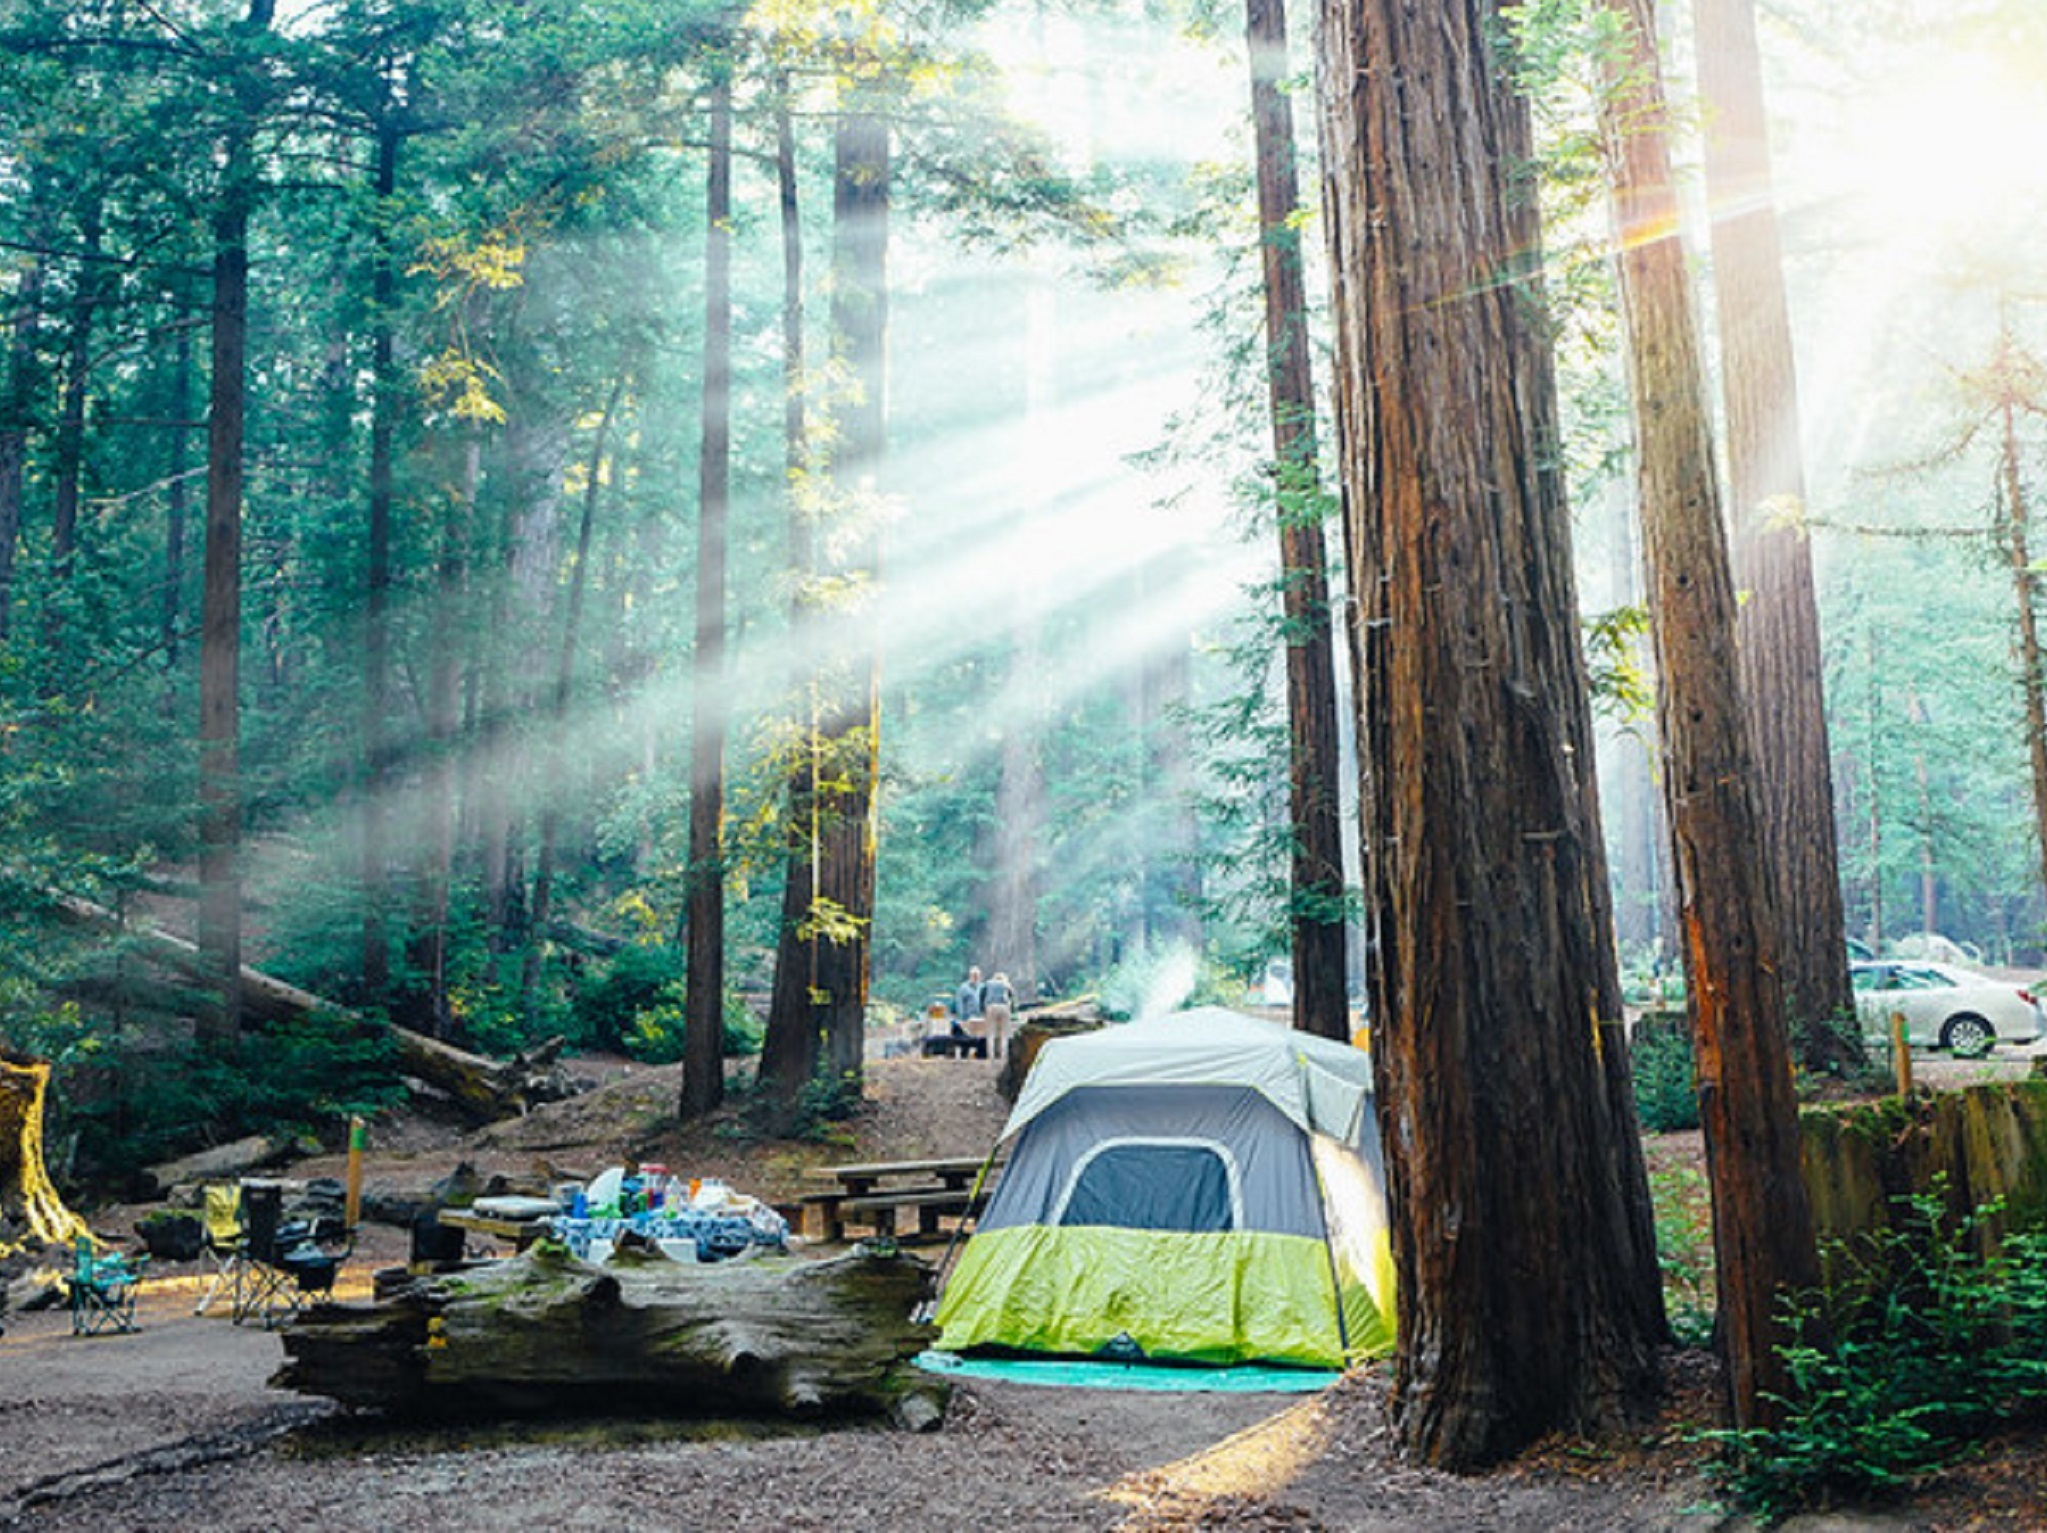 A yellow and grey tent among the redwoods